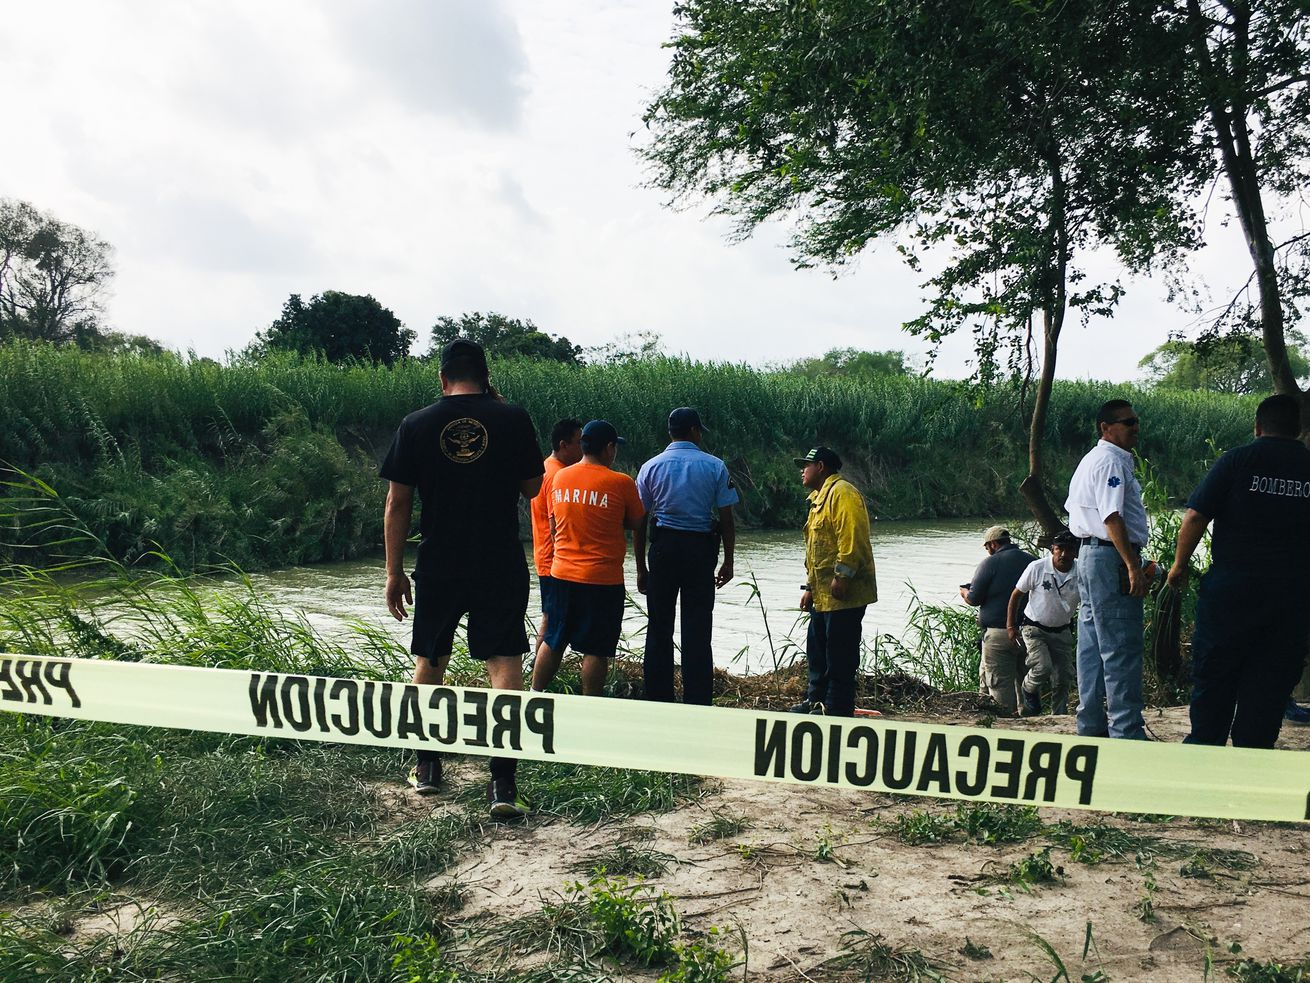 Authorities stand behind yellow warning tape along the Rio Grande bank where the bodies of Salvadoran migrant Oscar Alberto Martínez Ramírez and his nearly 2-year-old daughter Valeria were found, in Matamoros, Mexico, on June 24, 2019, after they drowned trying to cross the river to Brownsville, Texas.